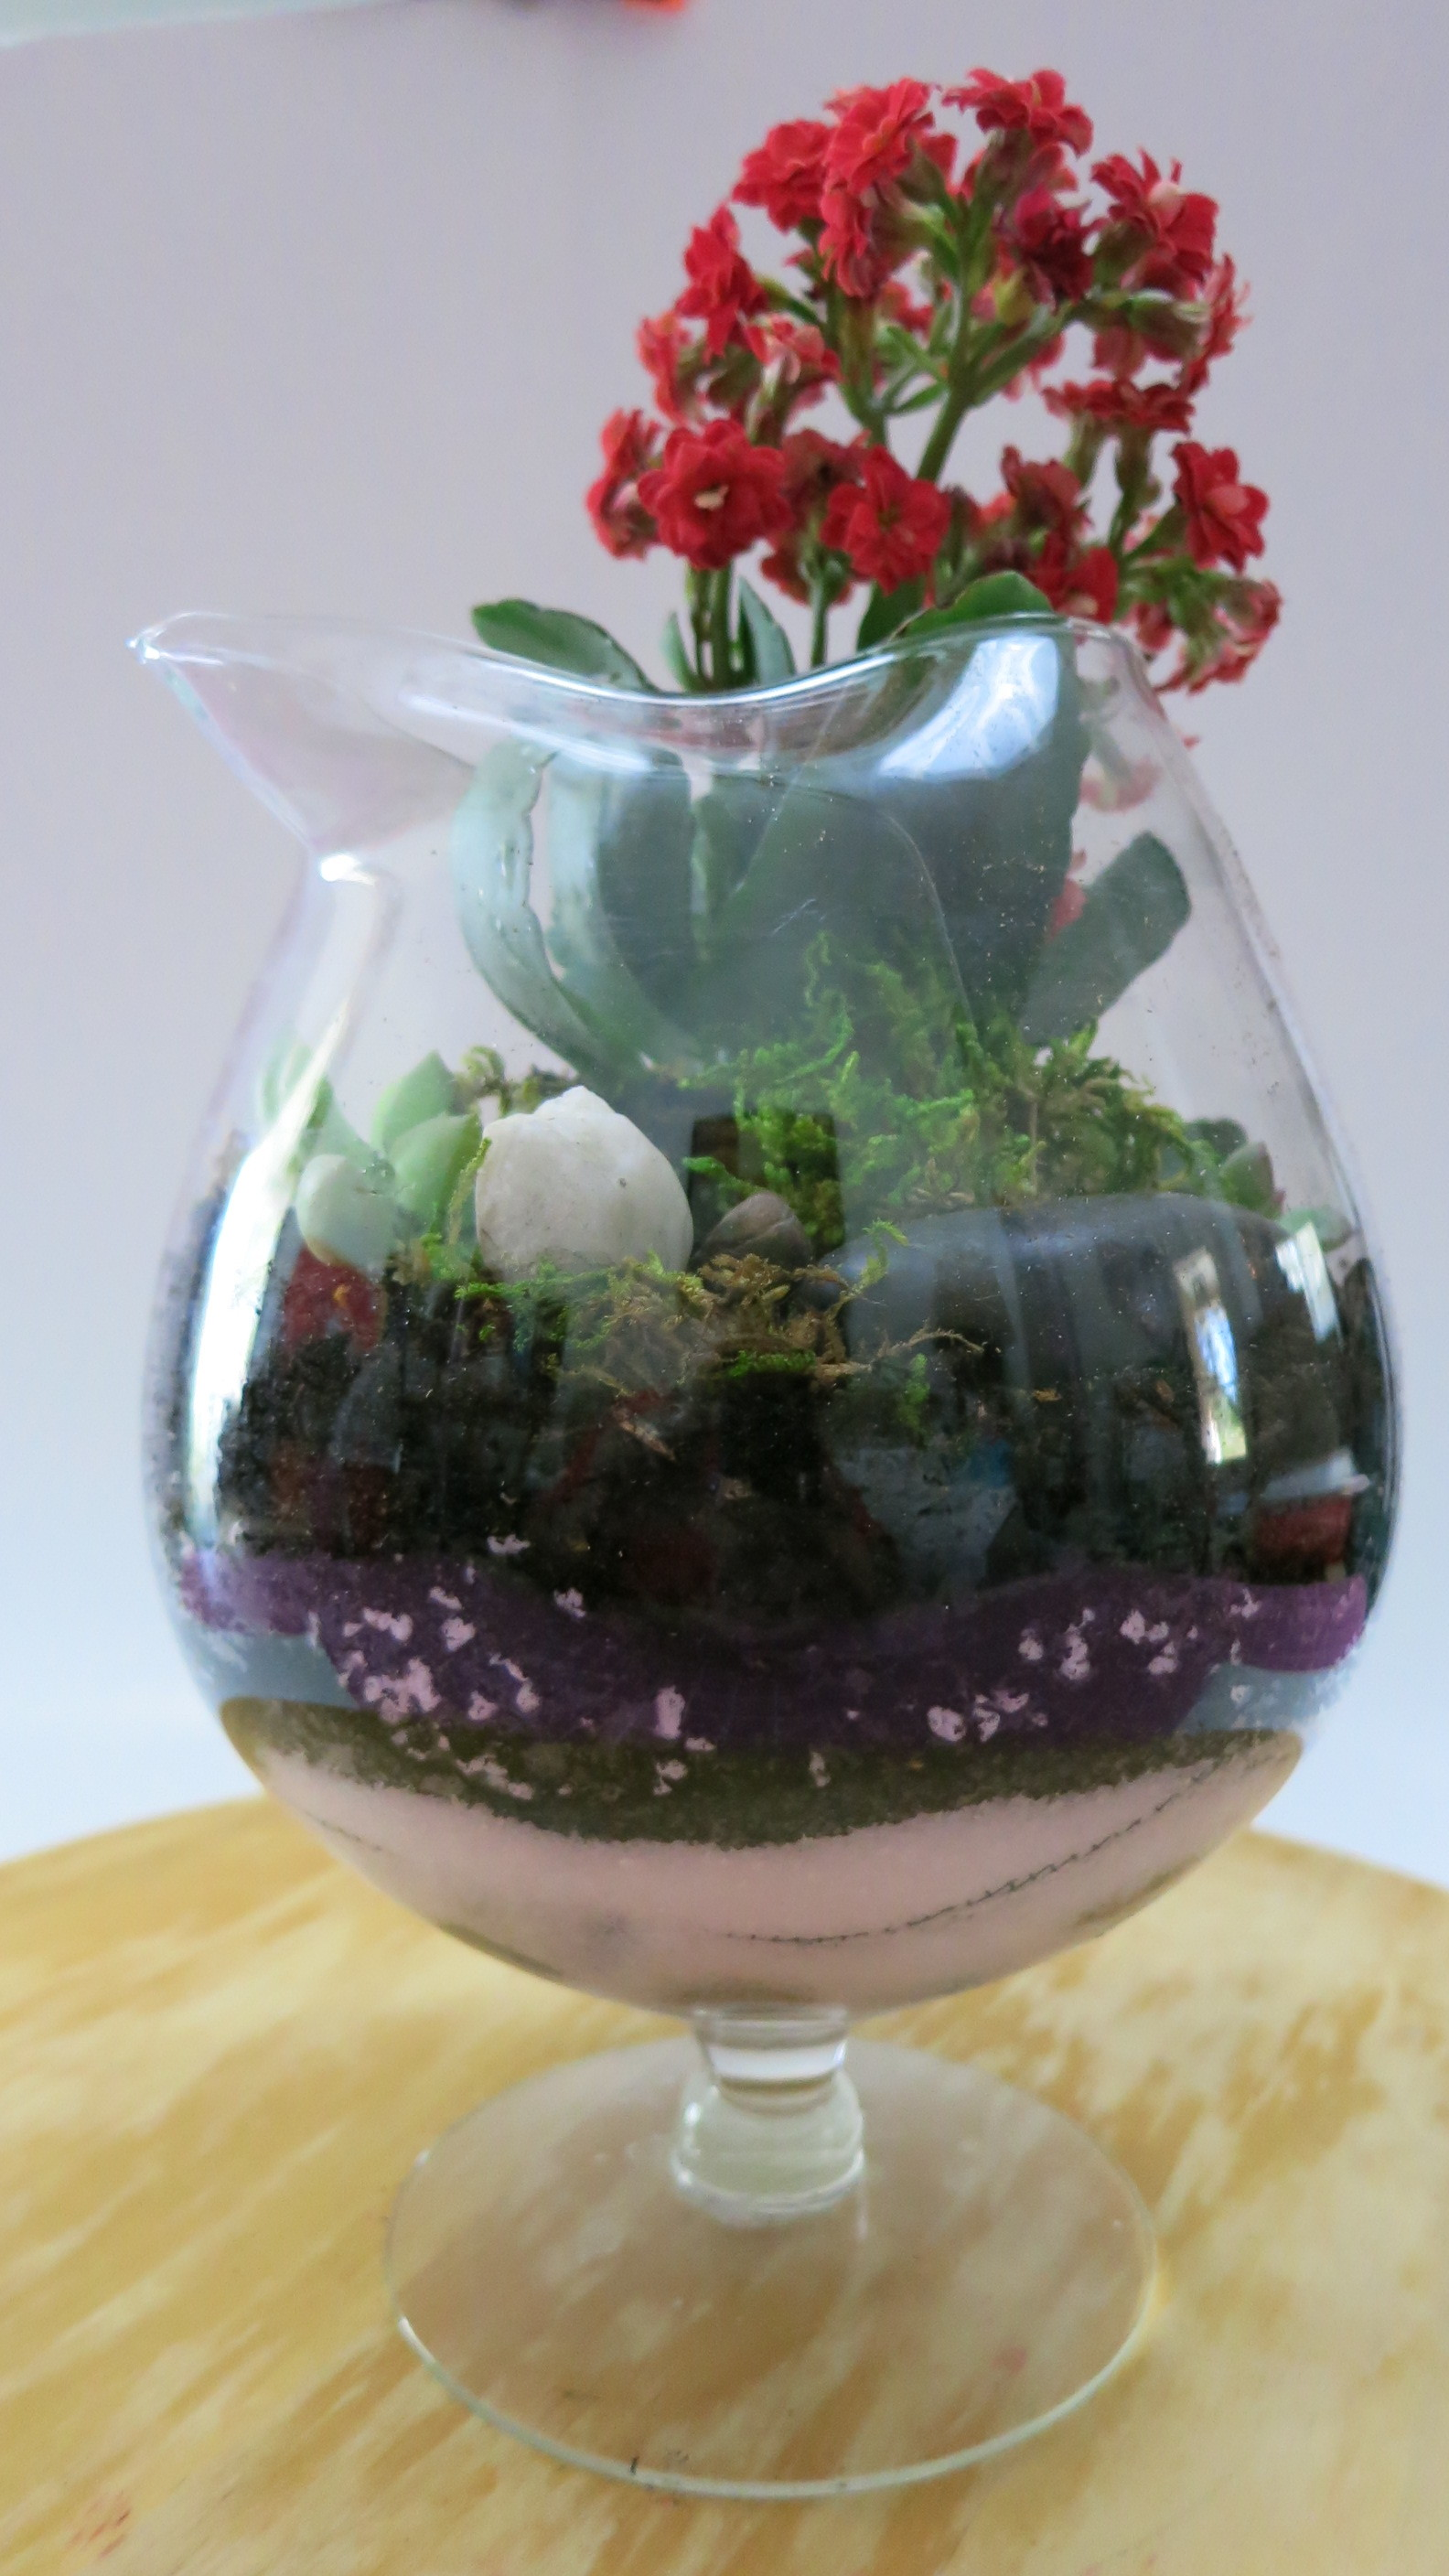 March 12, 2018 DIY: Plant a Flowering Succulent Open Terrarium in a glass pitcher. Fast and Easy Gardening.